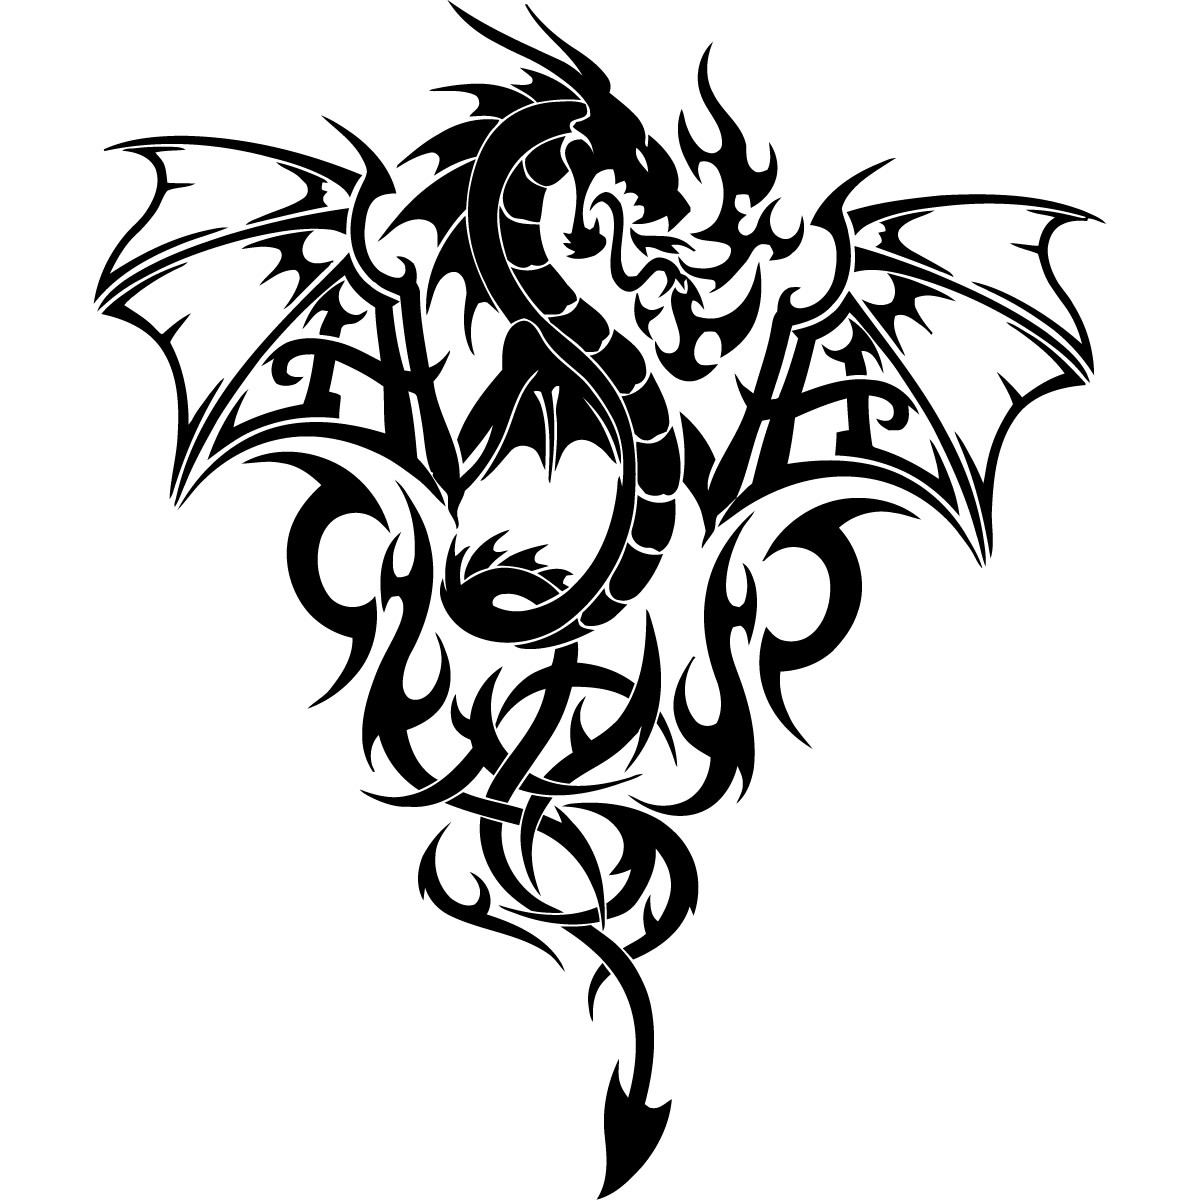 Awesome Black Dragon for Print Design Water Transfer Temporary Tattoo(fake Tattoo) Stickers NO.11136